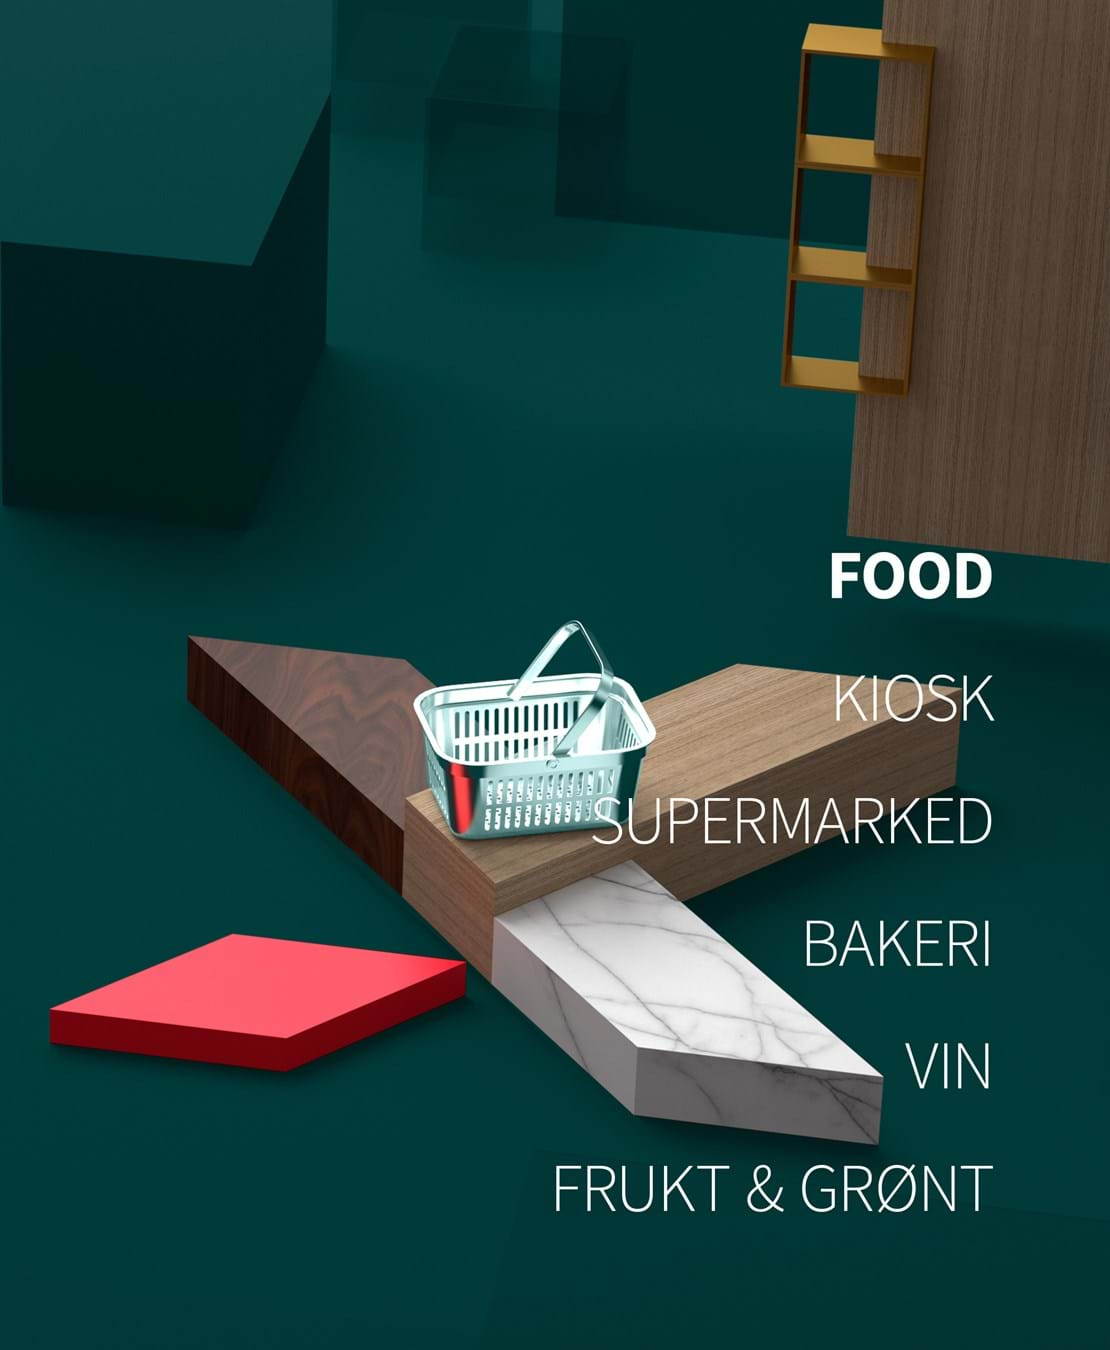 Expedit-kontakt-food-NO-001.jpg